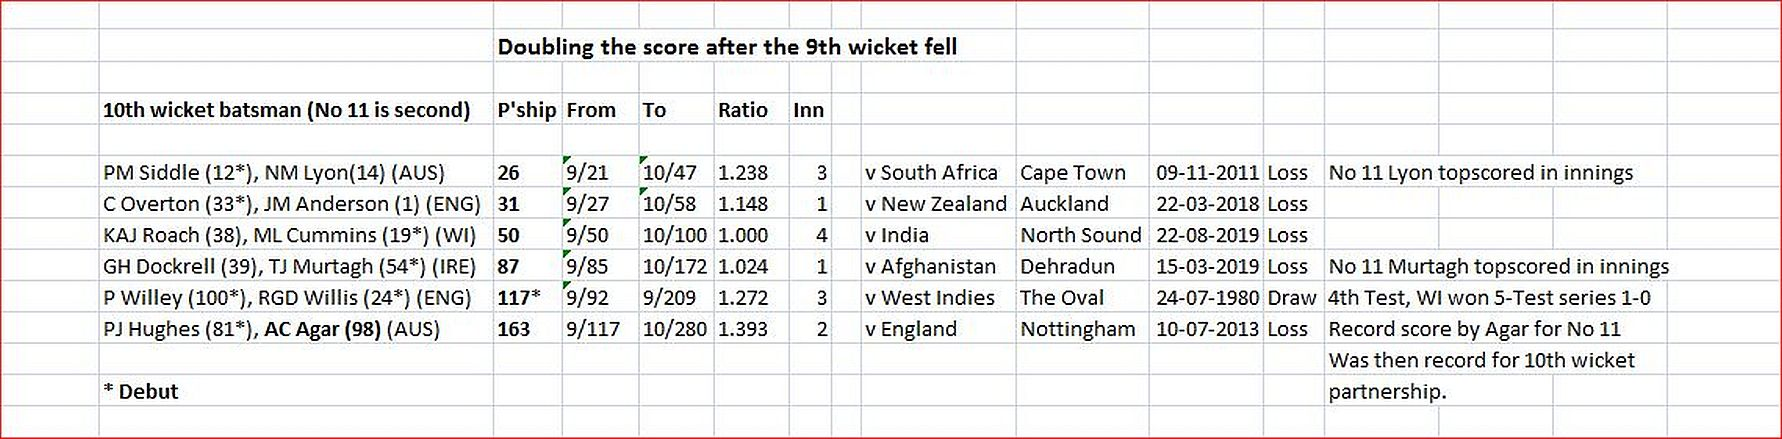 Doubling after 9th wicket fell